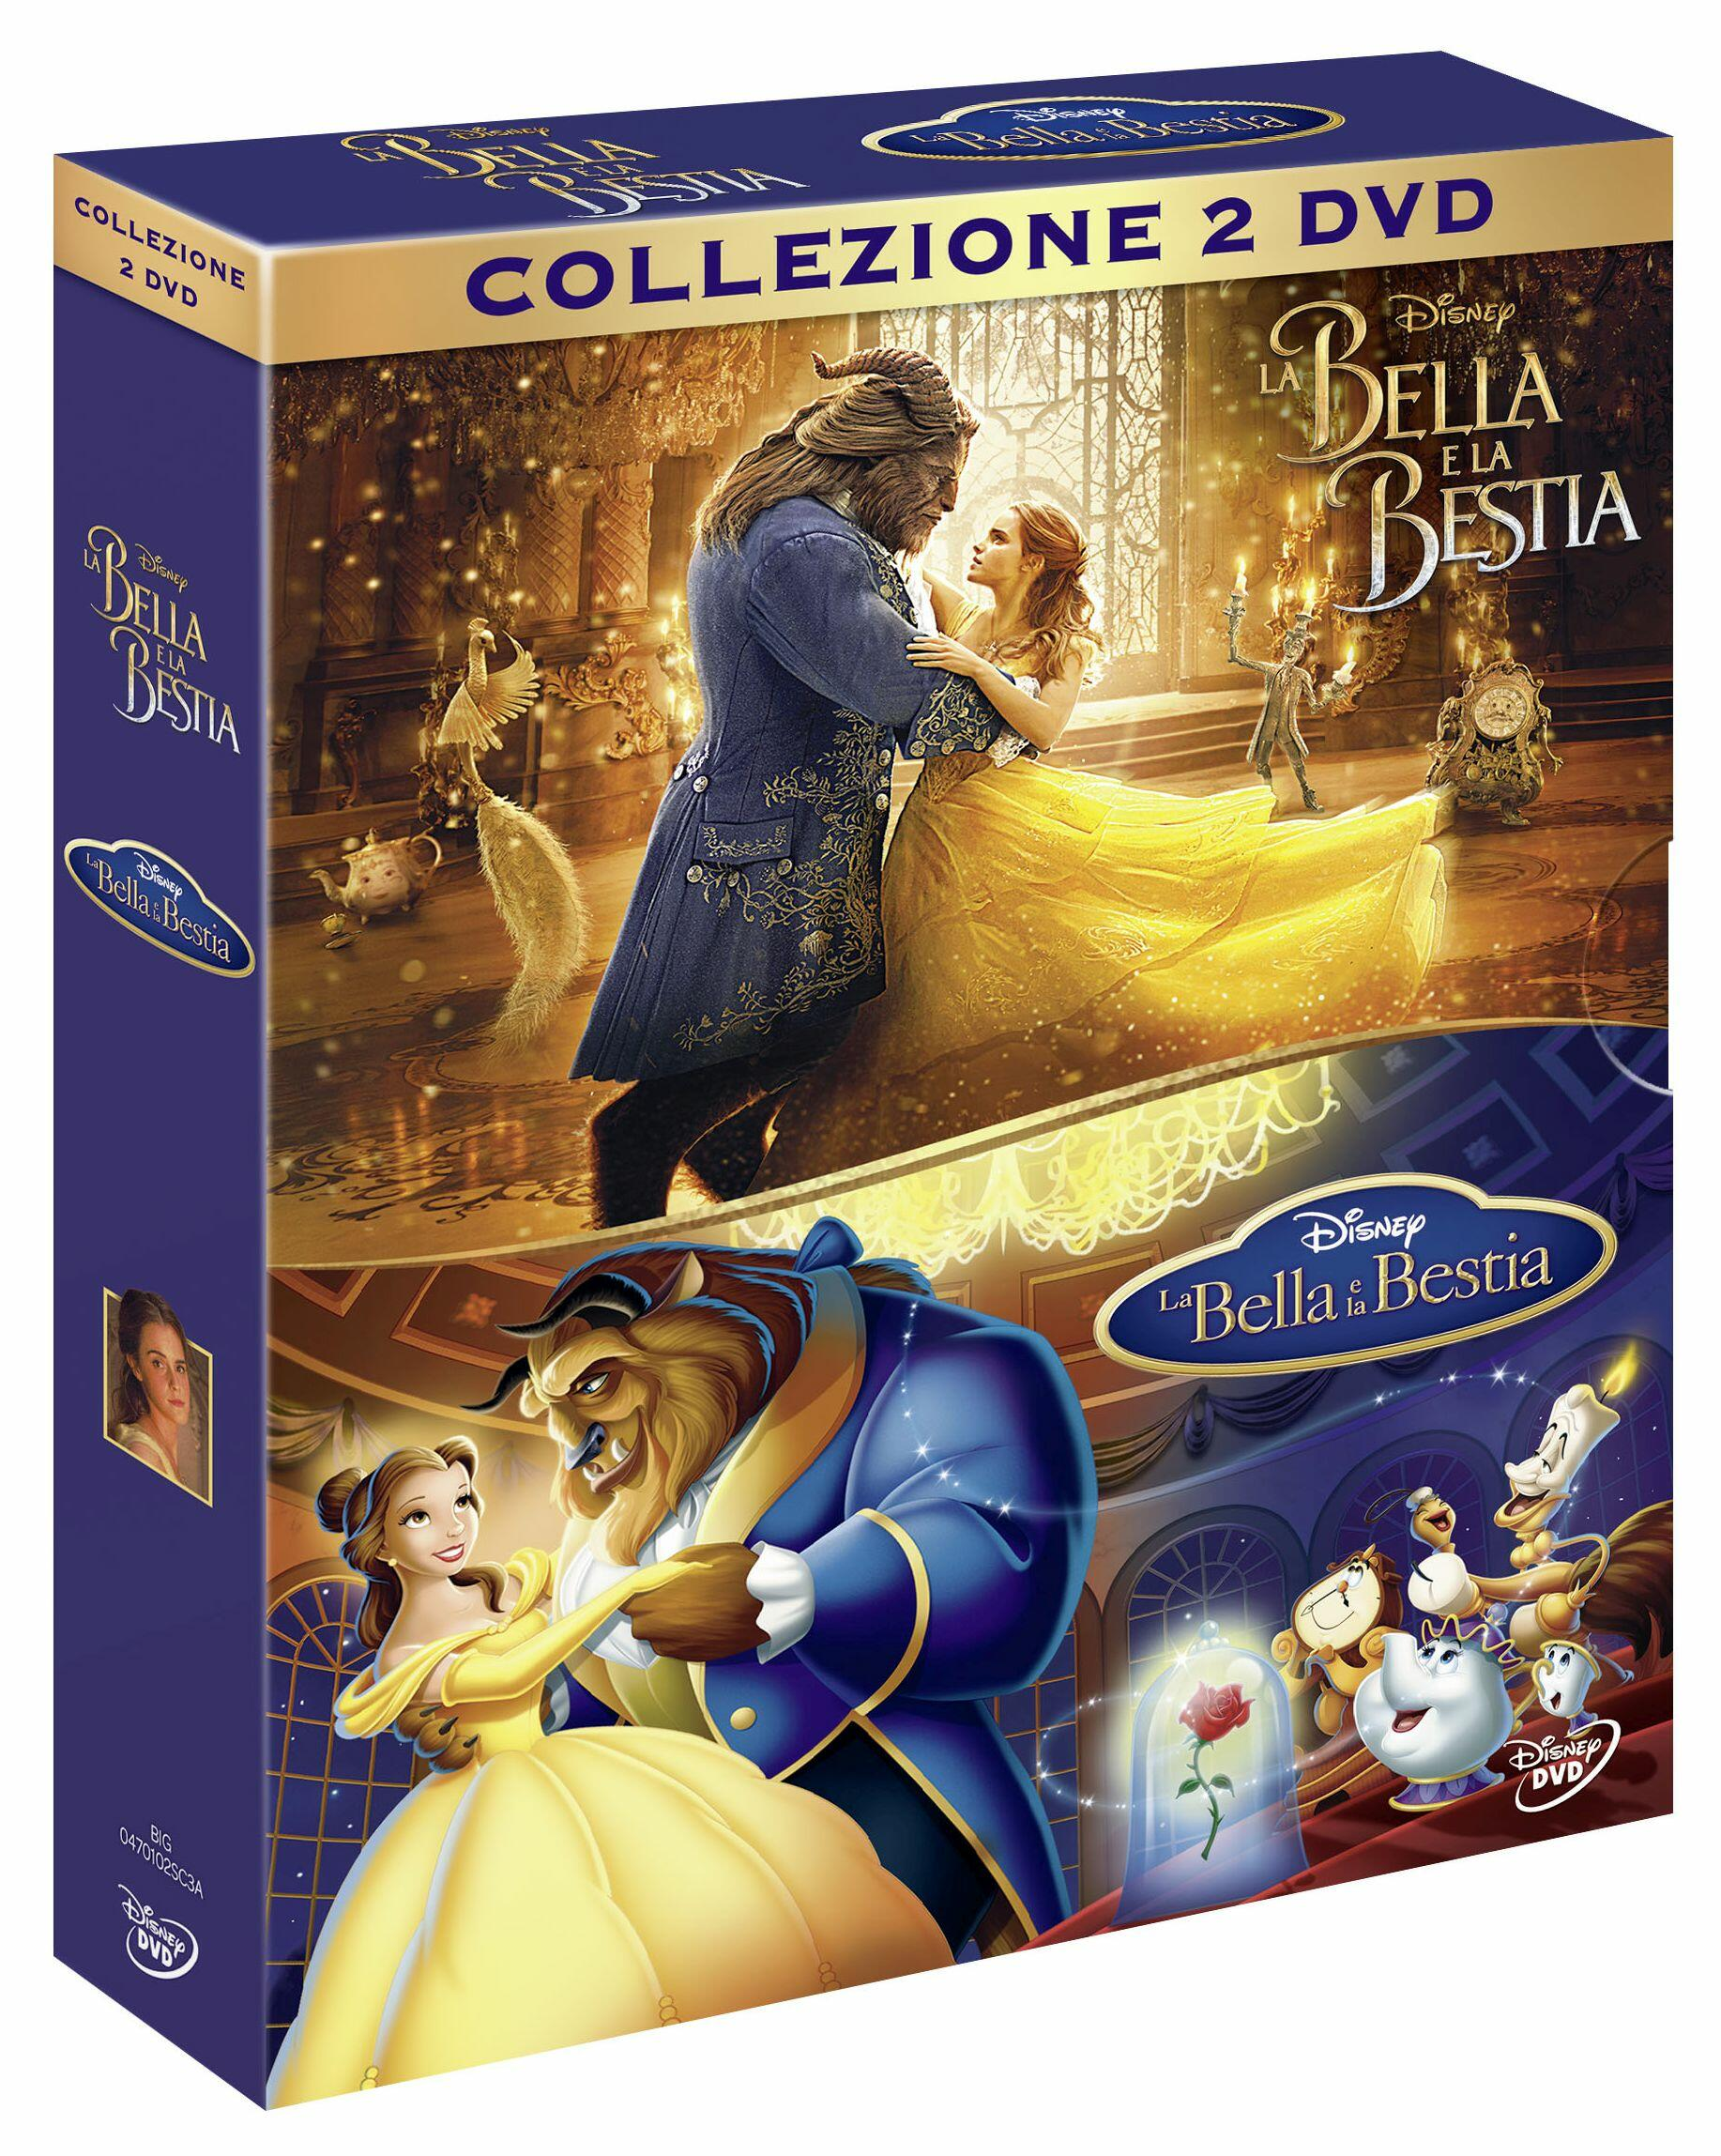 La bella e bestia live action cartone animato dvd